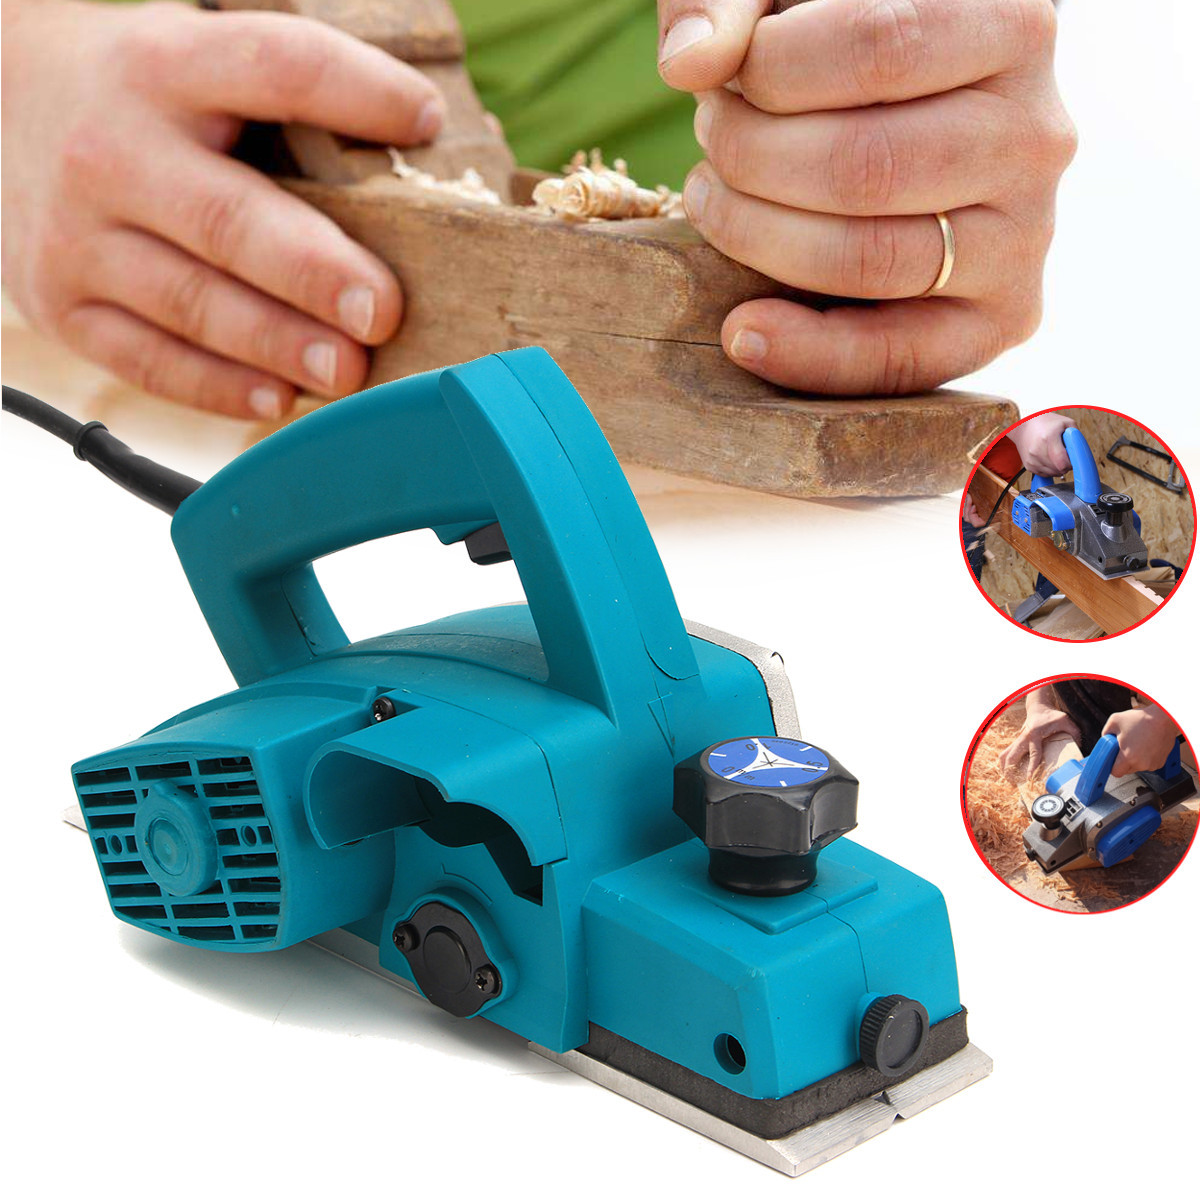 220V 800W Powerful Electric Wood Planer Door Plane Hand Held Woodworking Surface US Plug